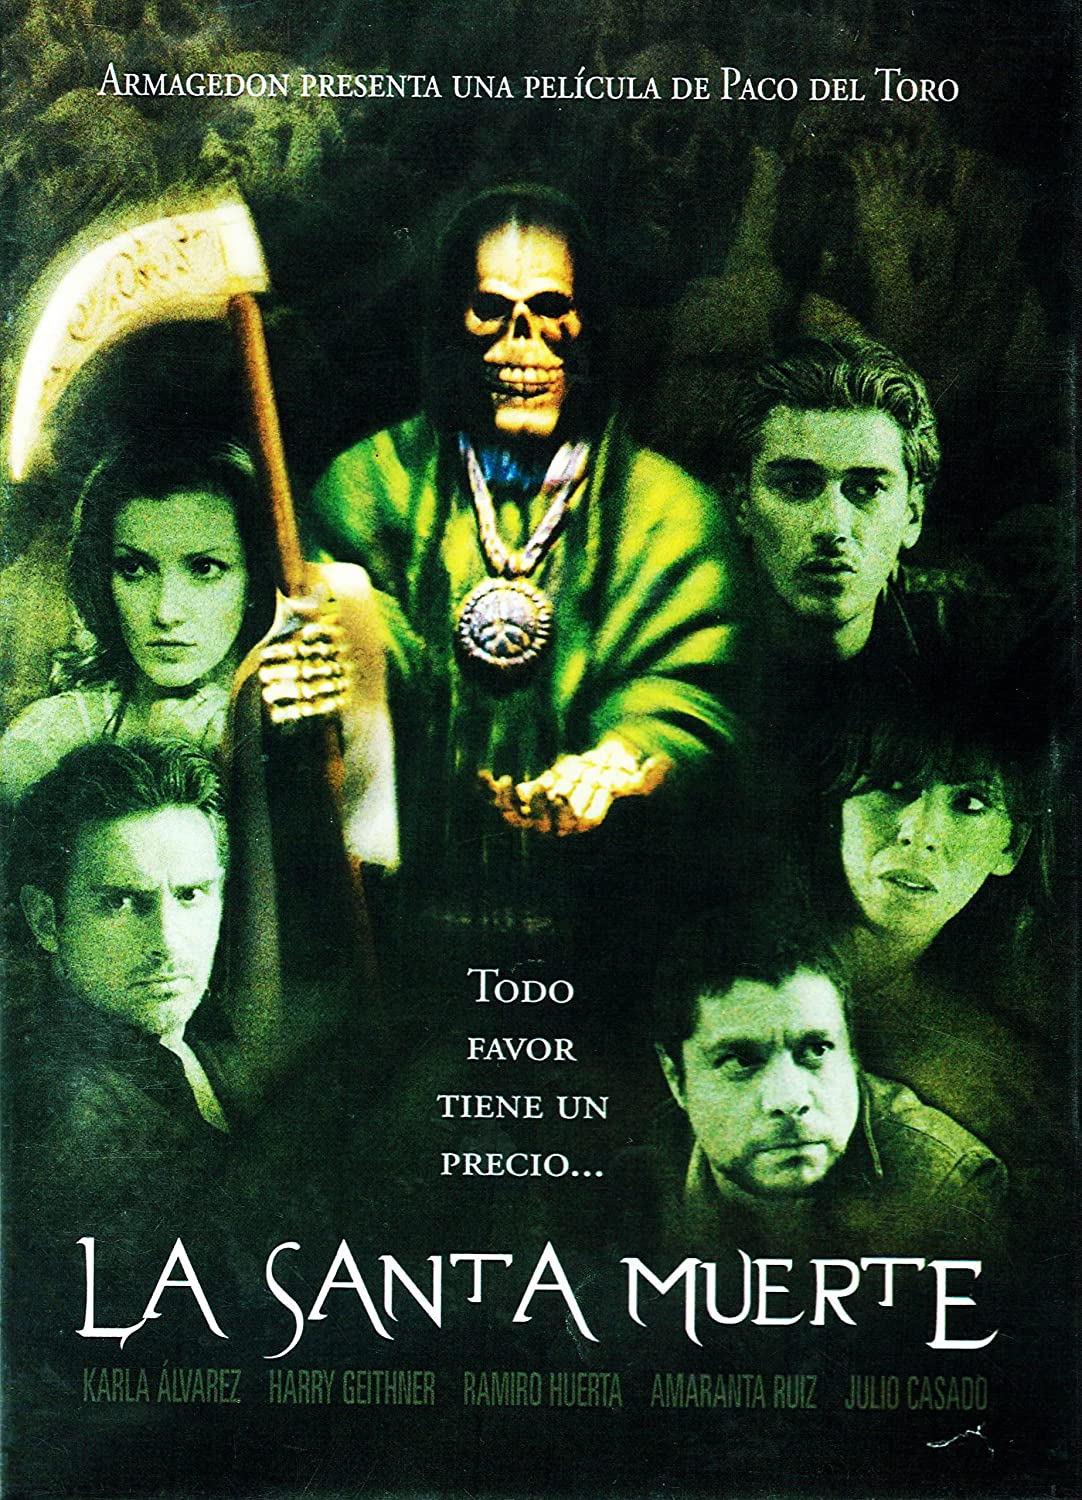 Amazon.com: La Santa Muerte: La Santa Muerte: Movies & TV